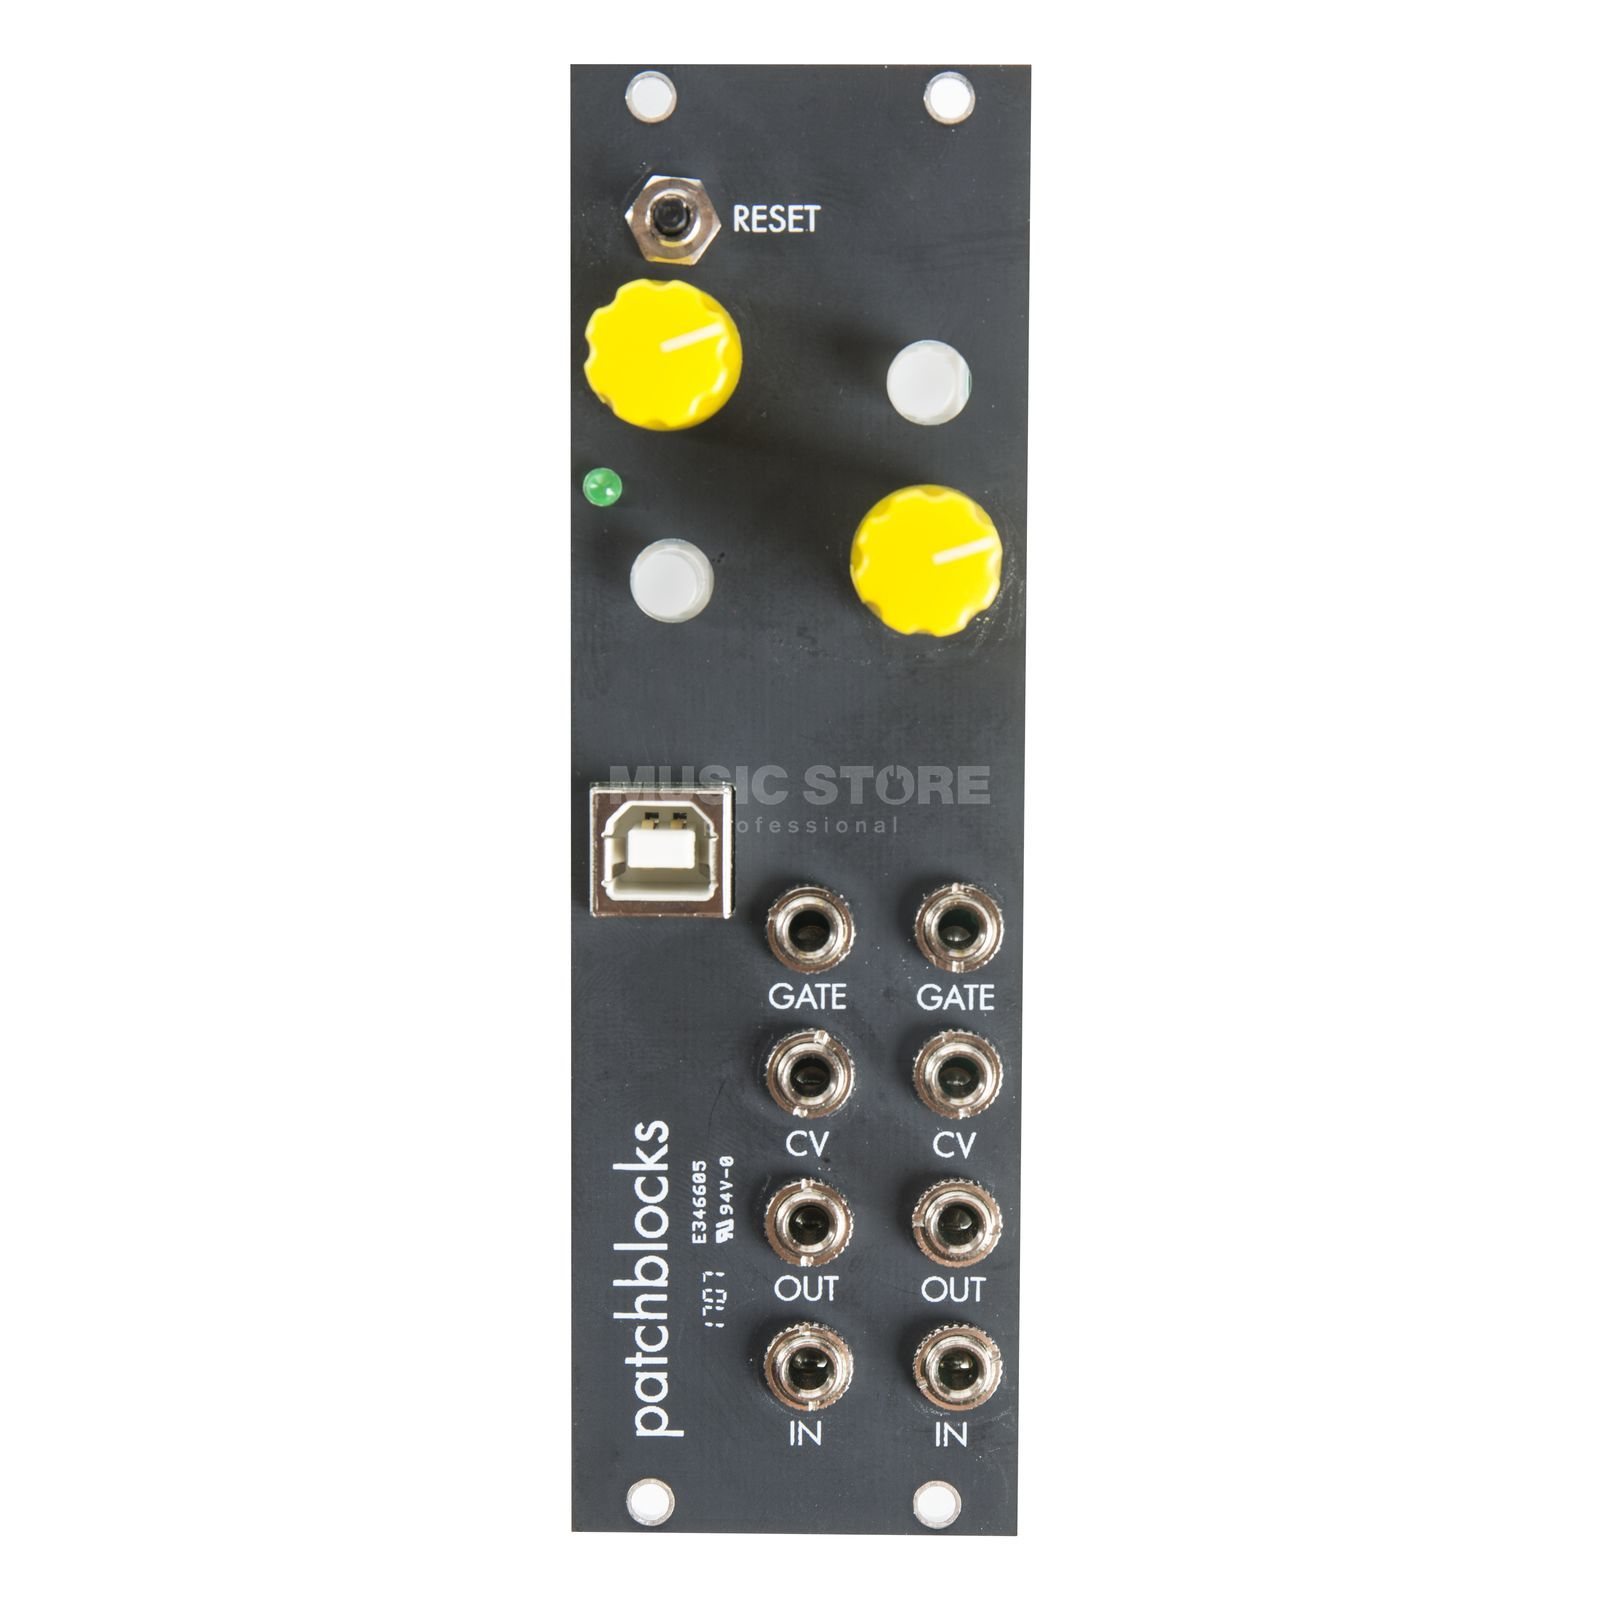 Patchblocks Patchblock Eurorack Product Image